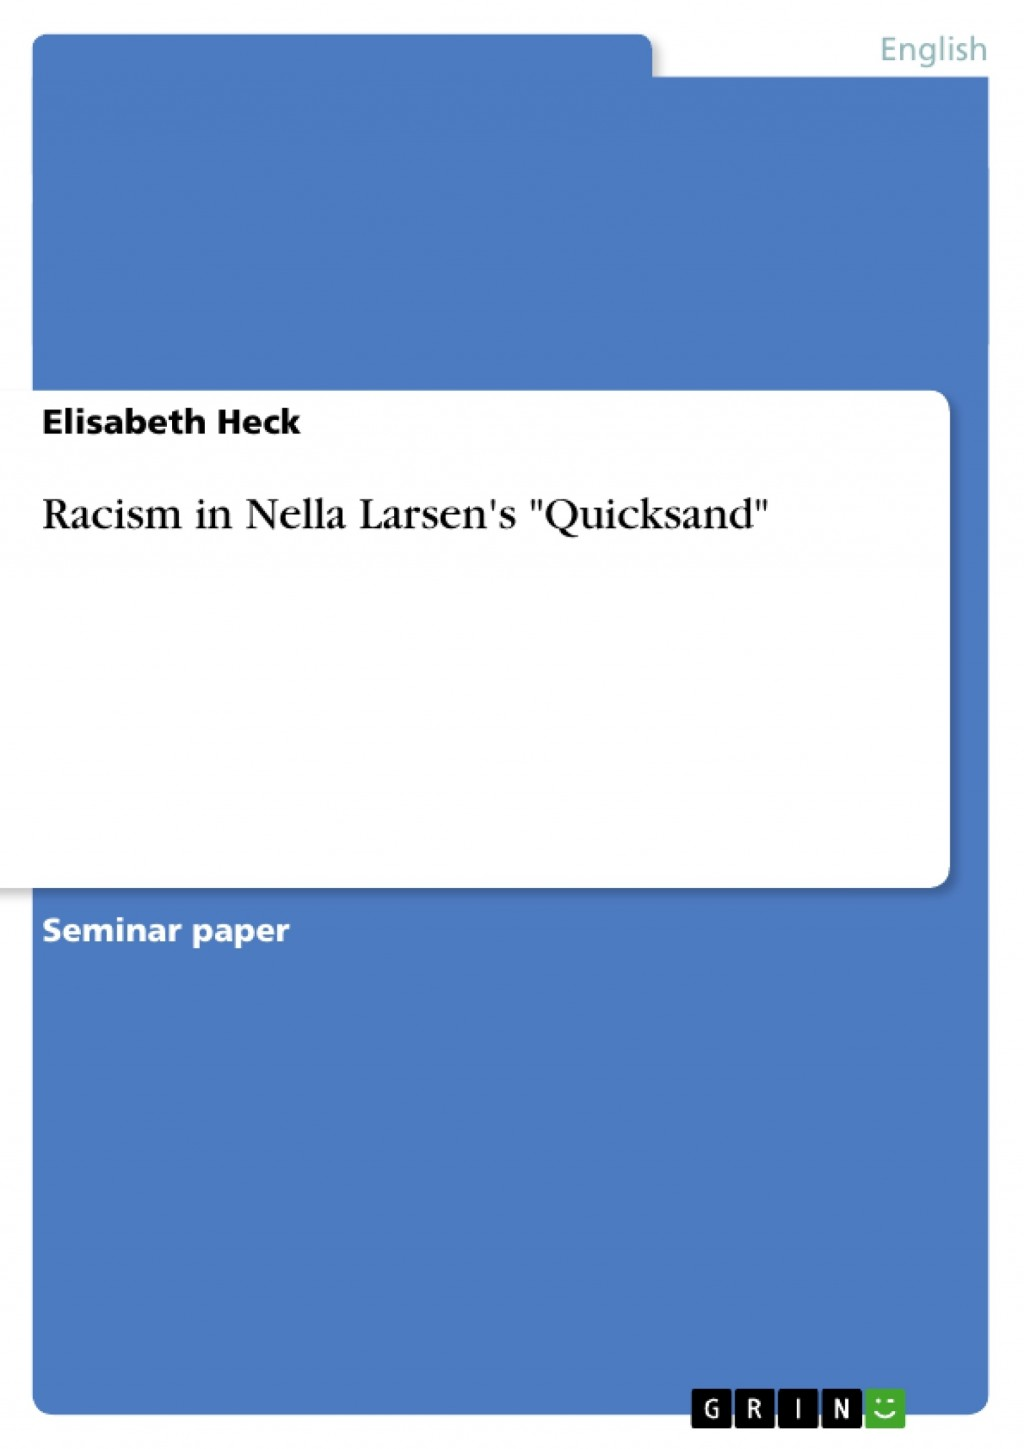 021 181607 0 Racism Essay Topics Excellent Questions Othello Paper Large